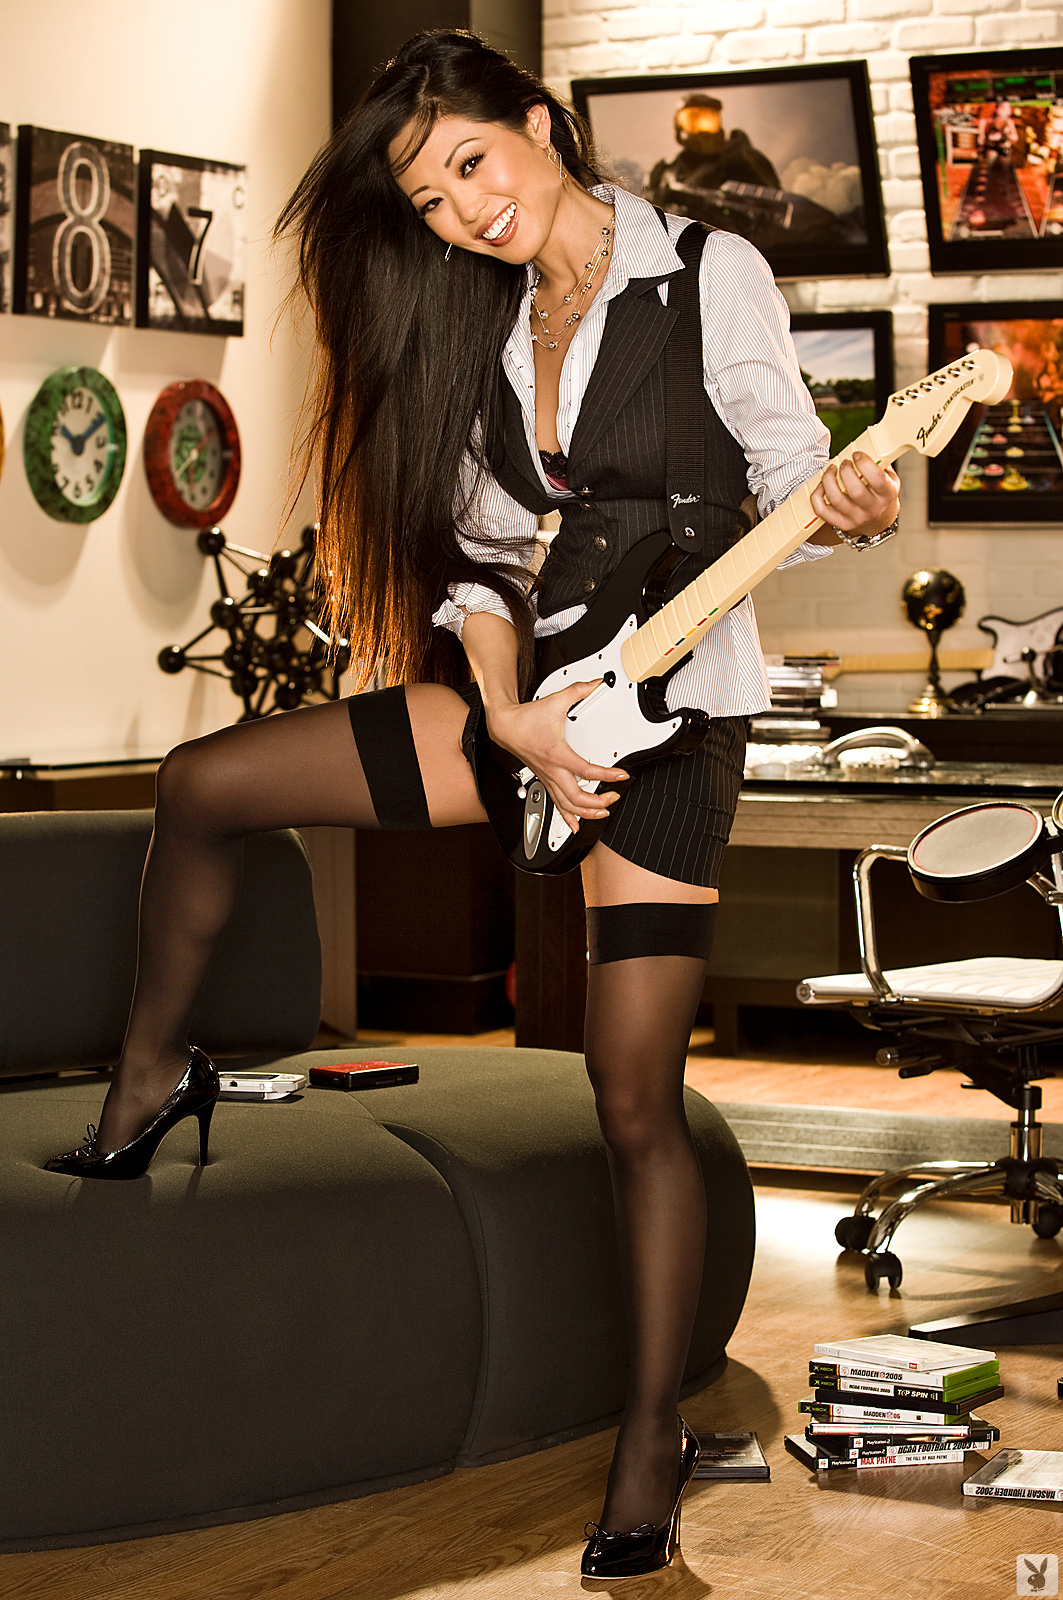 grace-kim-guitar-stockings-naked-asian-playboy-03